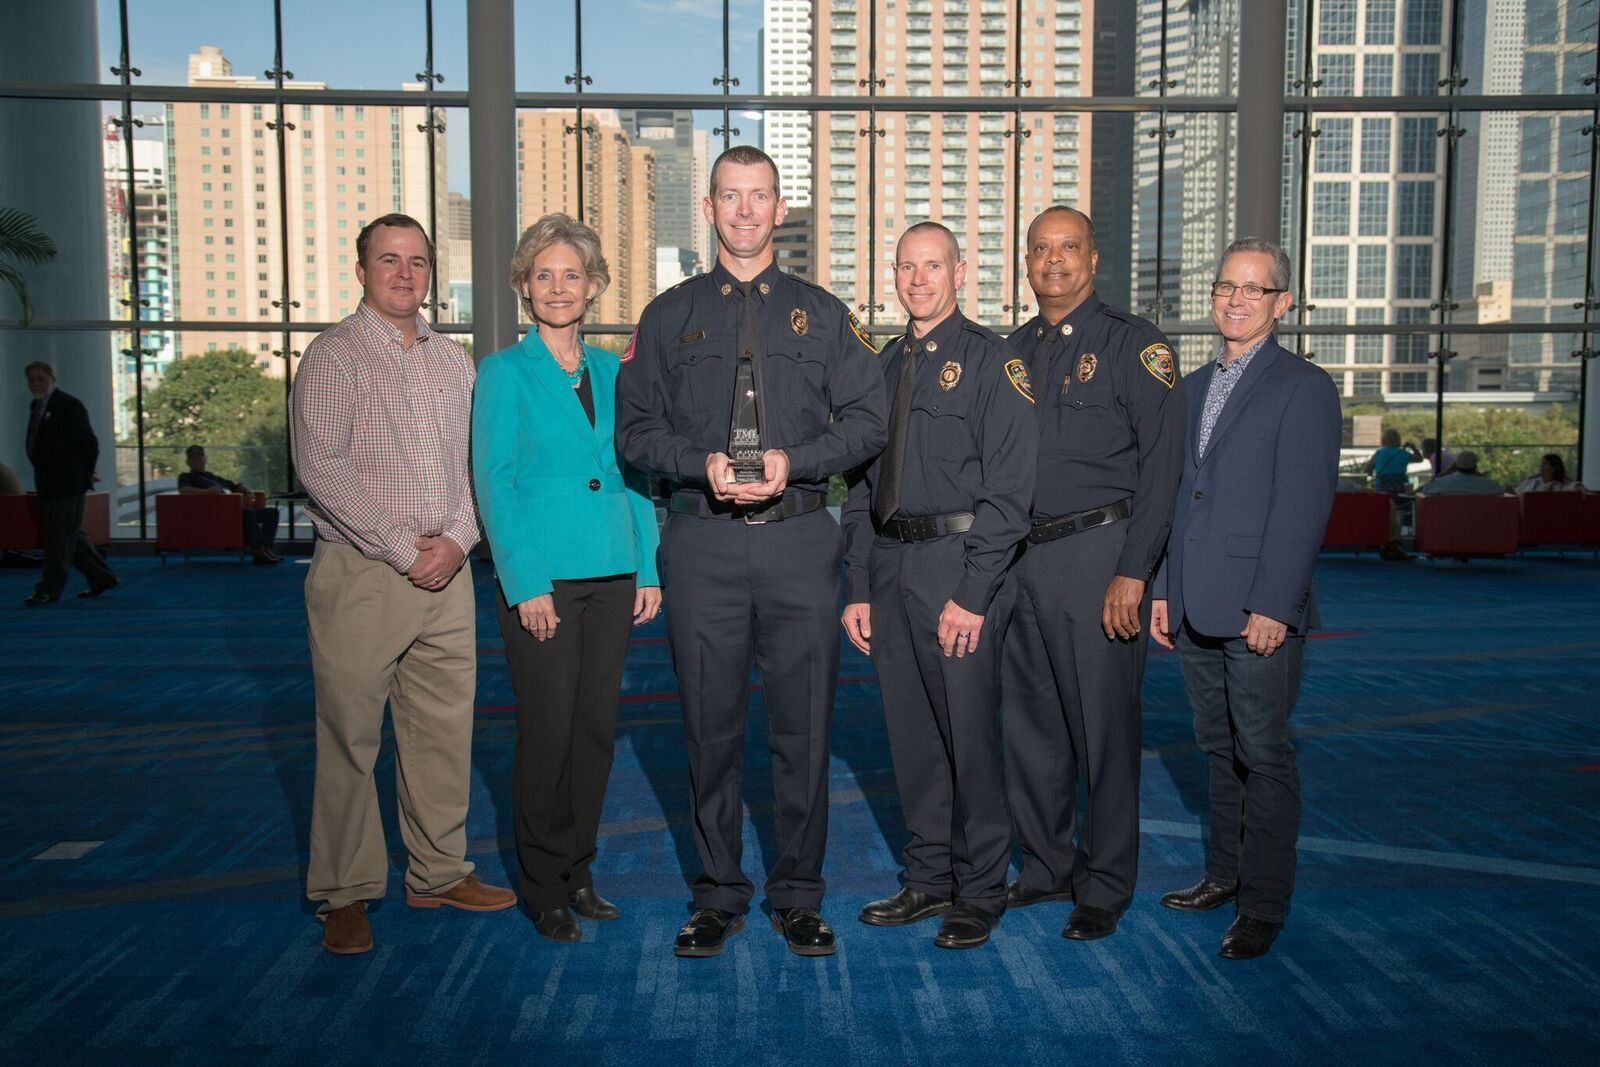 6 Kerrville employees together with one holding award at event